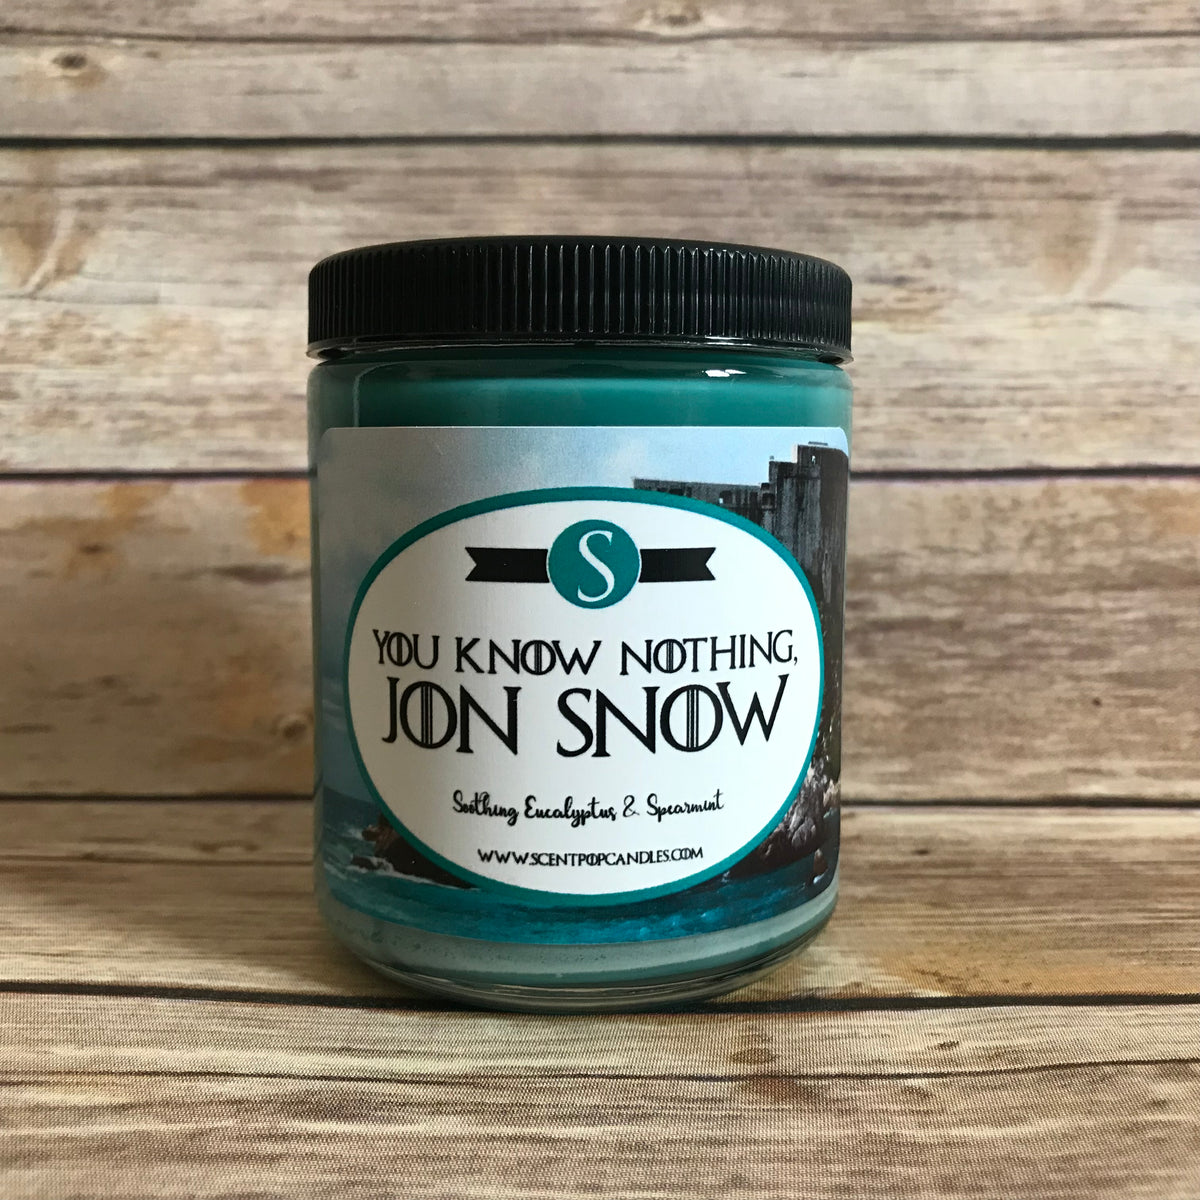 Jon Snow, Game of Thrones Inspired Soy Candle